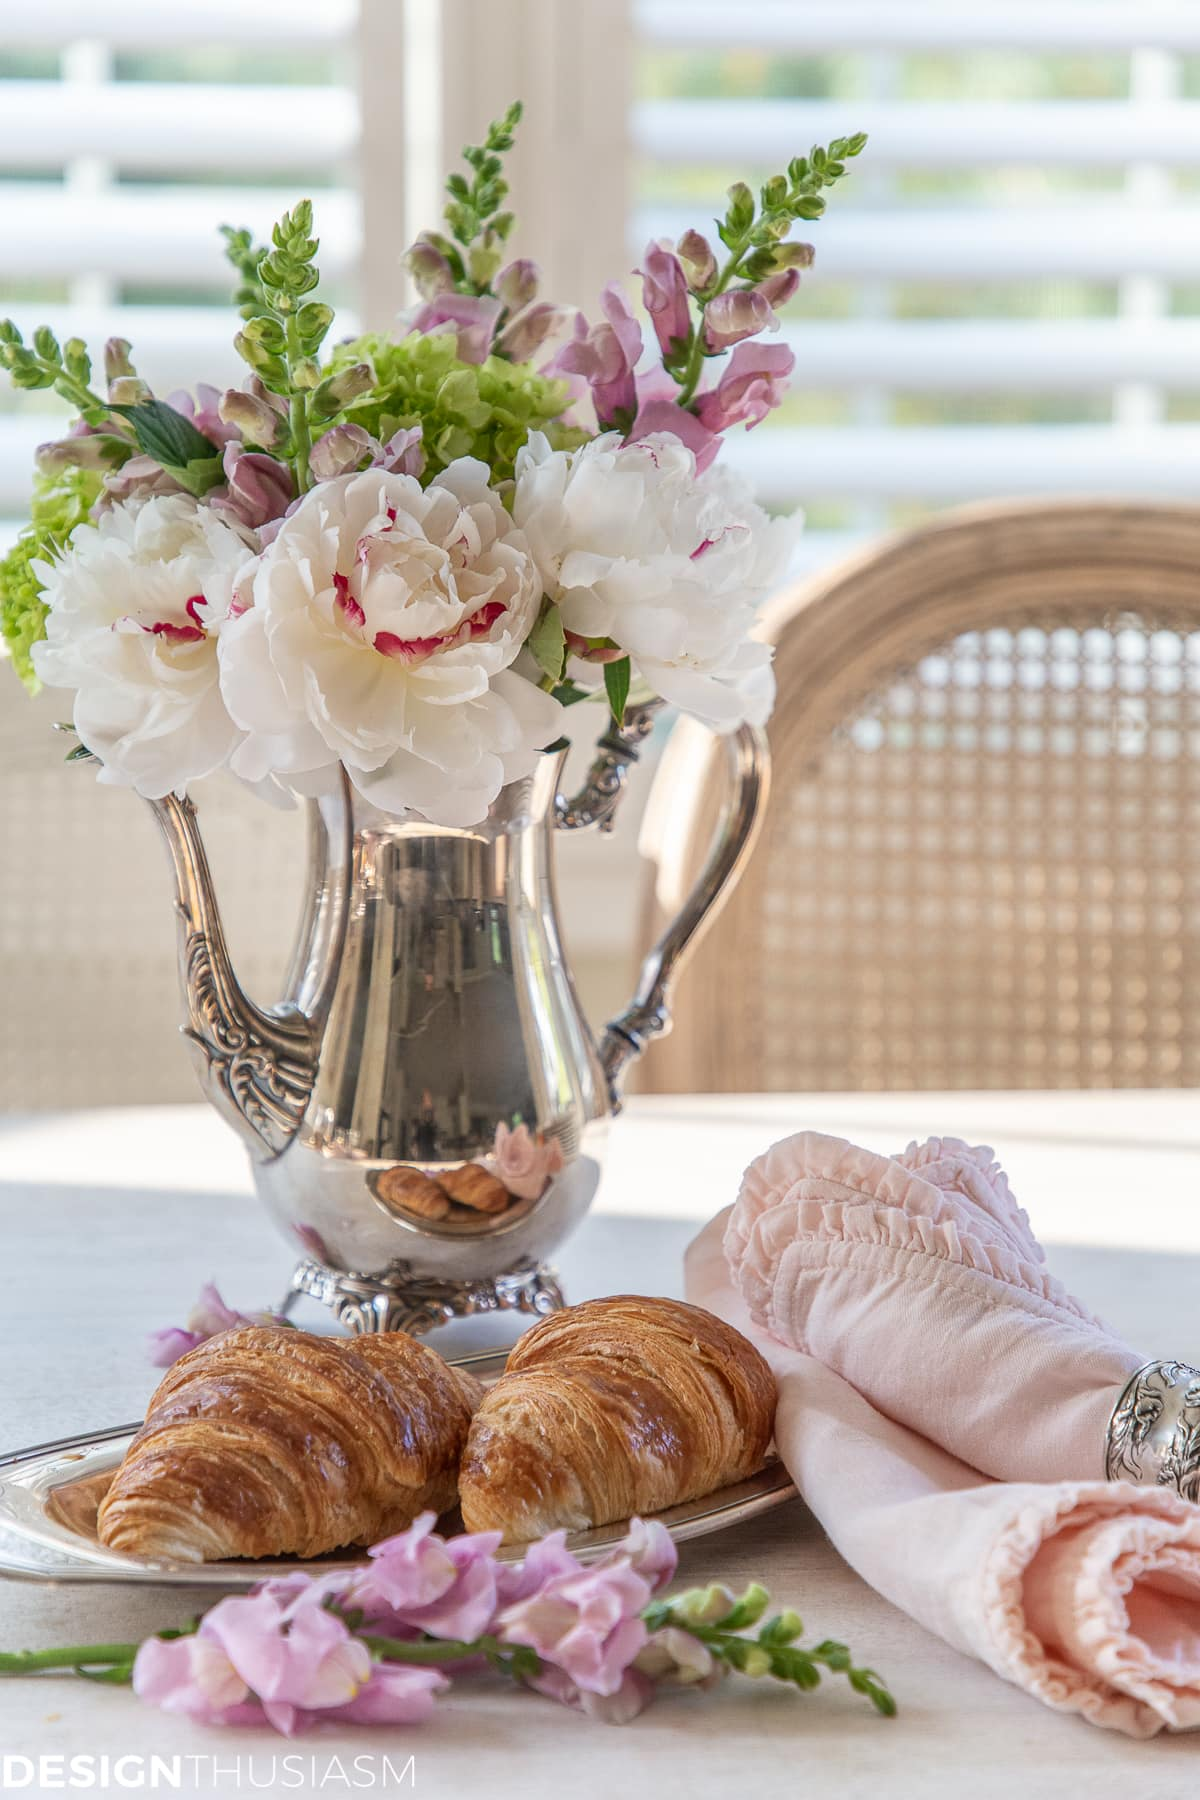 help yourself breakfast bar croissants and flowers